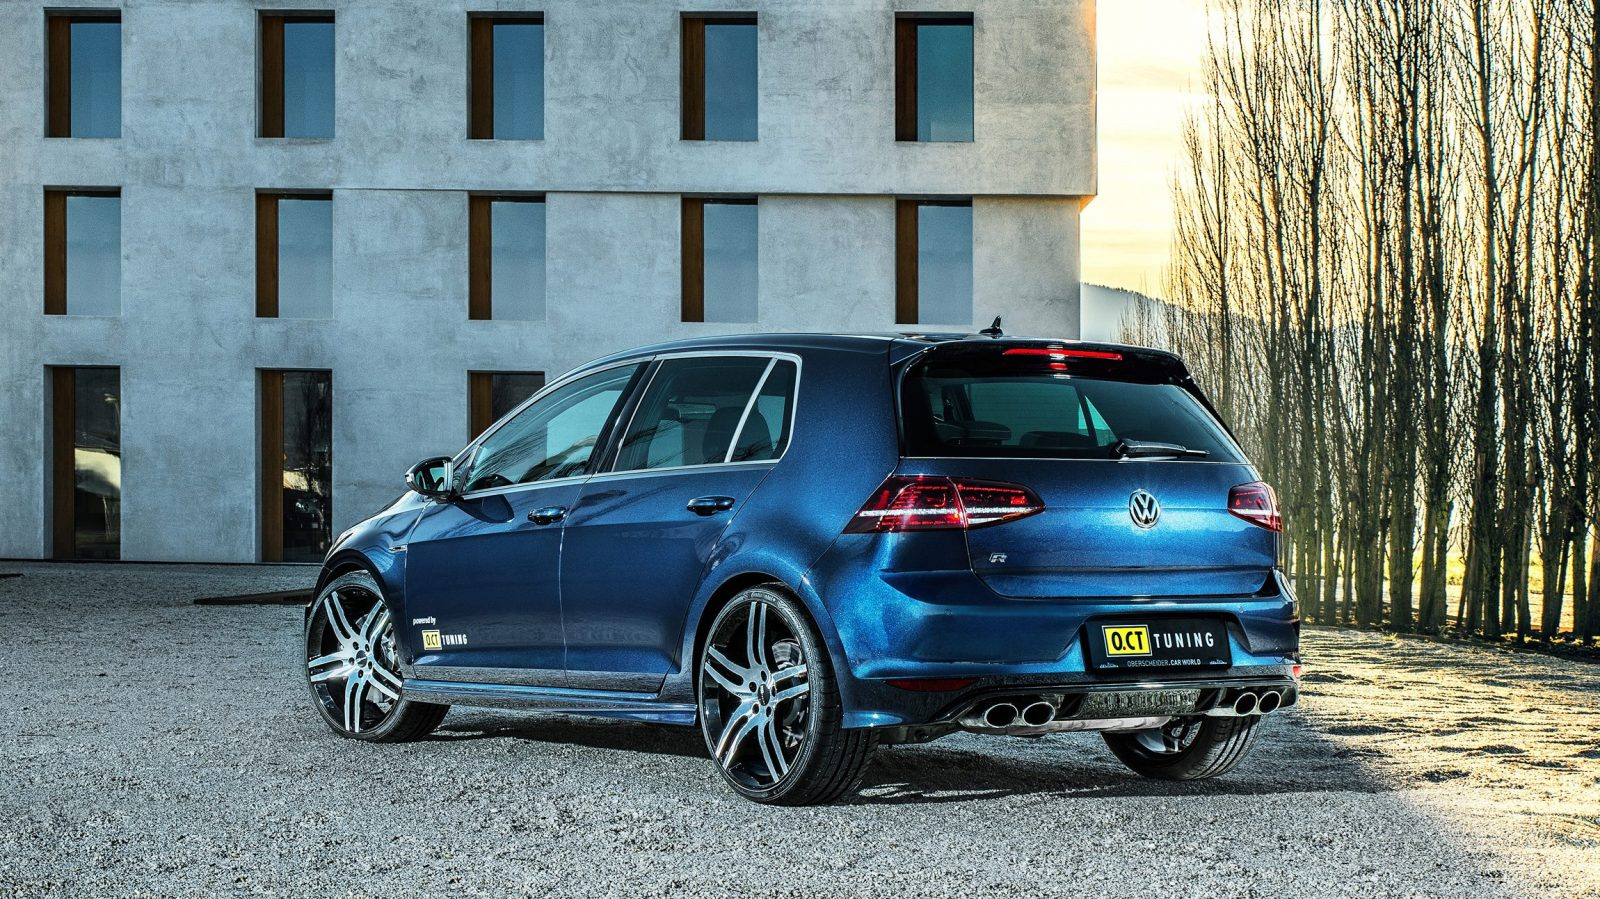 3 second vw oct tuning liberates 450hp from golf 7 r car revs. Black Bedroom Furniture Sets. Home Design Ideas